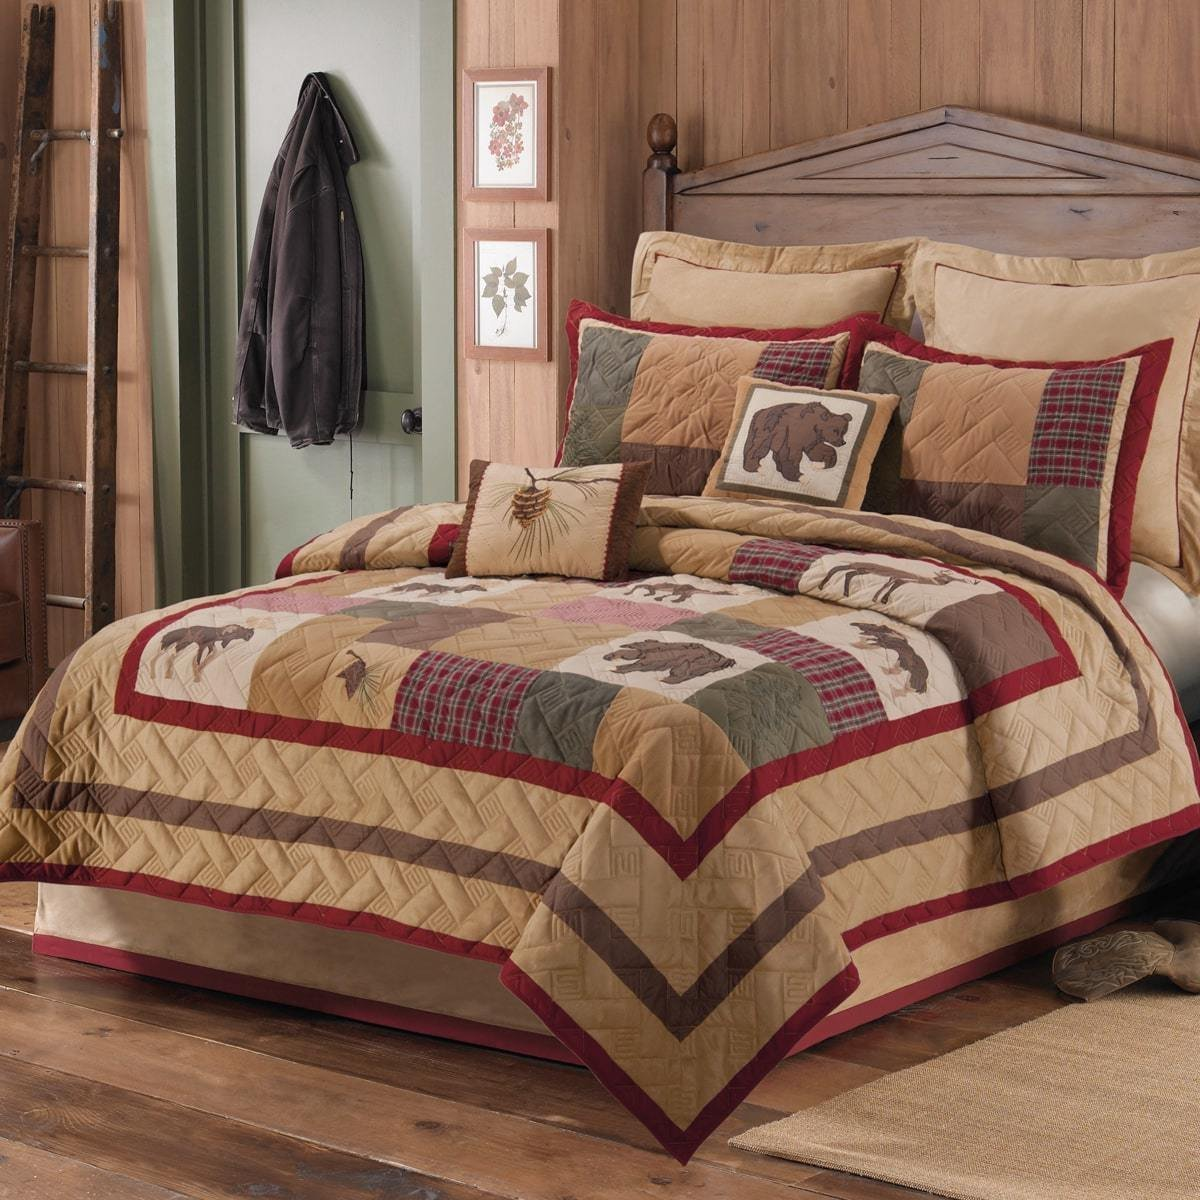 OVS 1 Piece Beautiful Brown Red Green Tan Twin Quilt, Rustic Lodge Wildlife Plaid Patchwork Themed Bedding Animal Moose Deer Bear Cabin Cottage Nature Forest Country Western Pine Cone Casual, Cotton